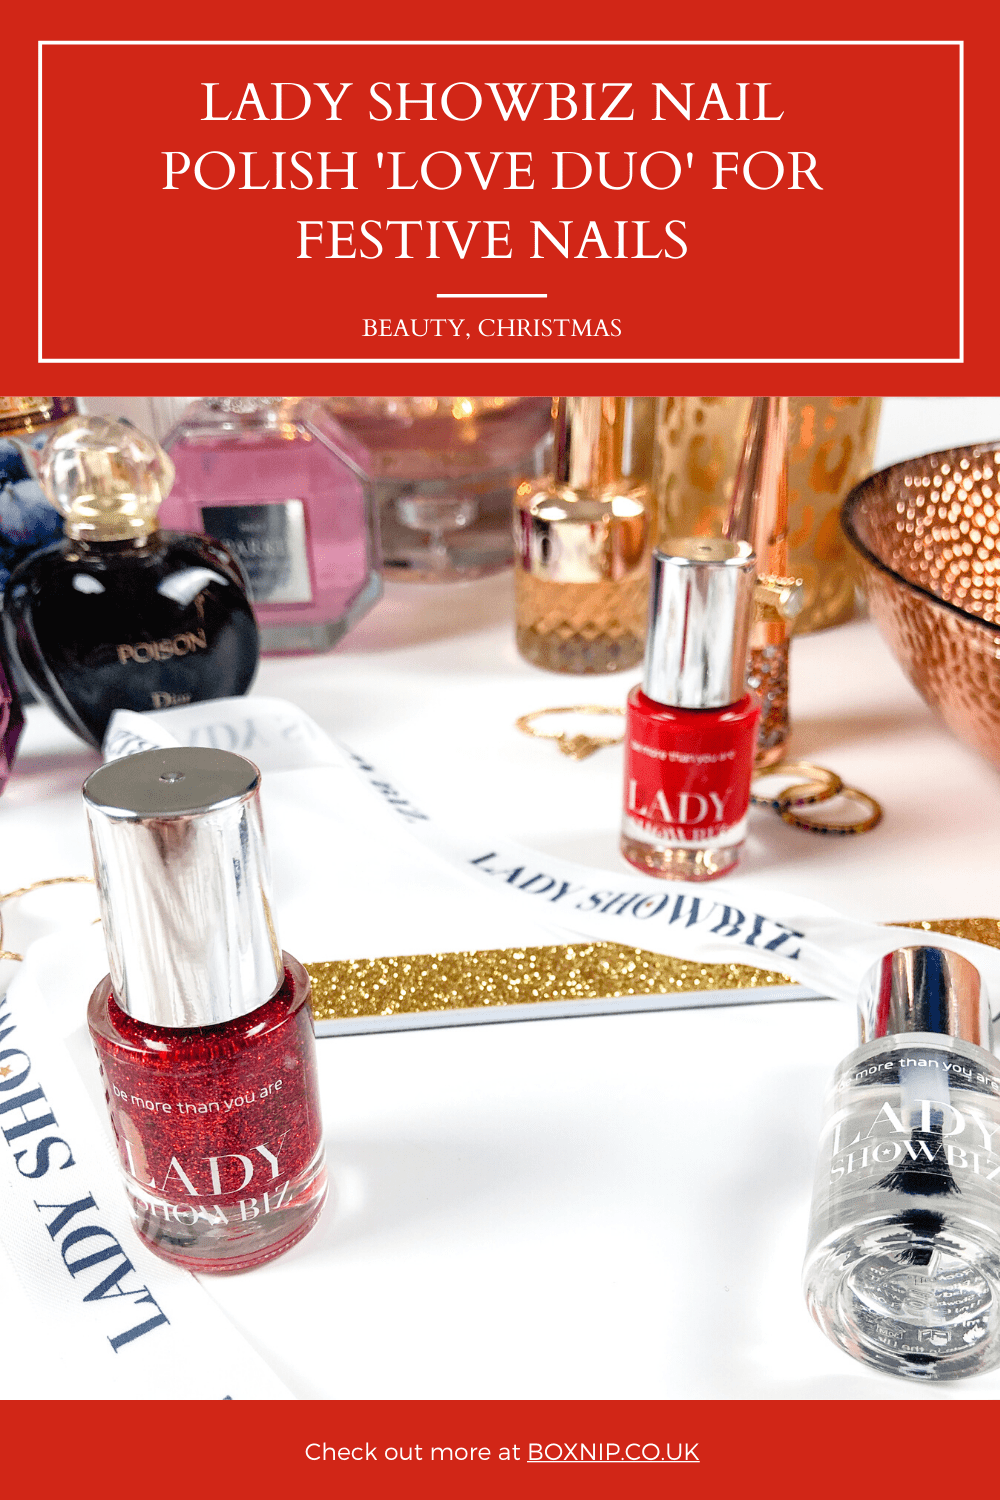 Lady Showbiz Nail Polish Duo 'Love Duo' for Perfect Holiday Nails